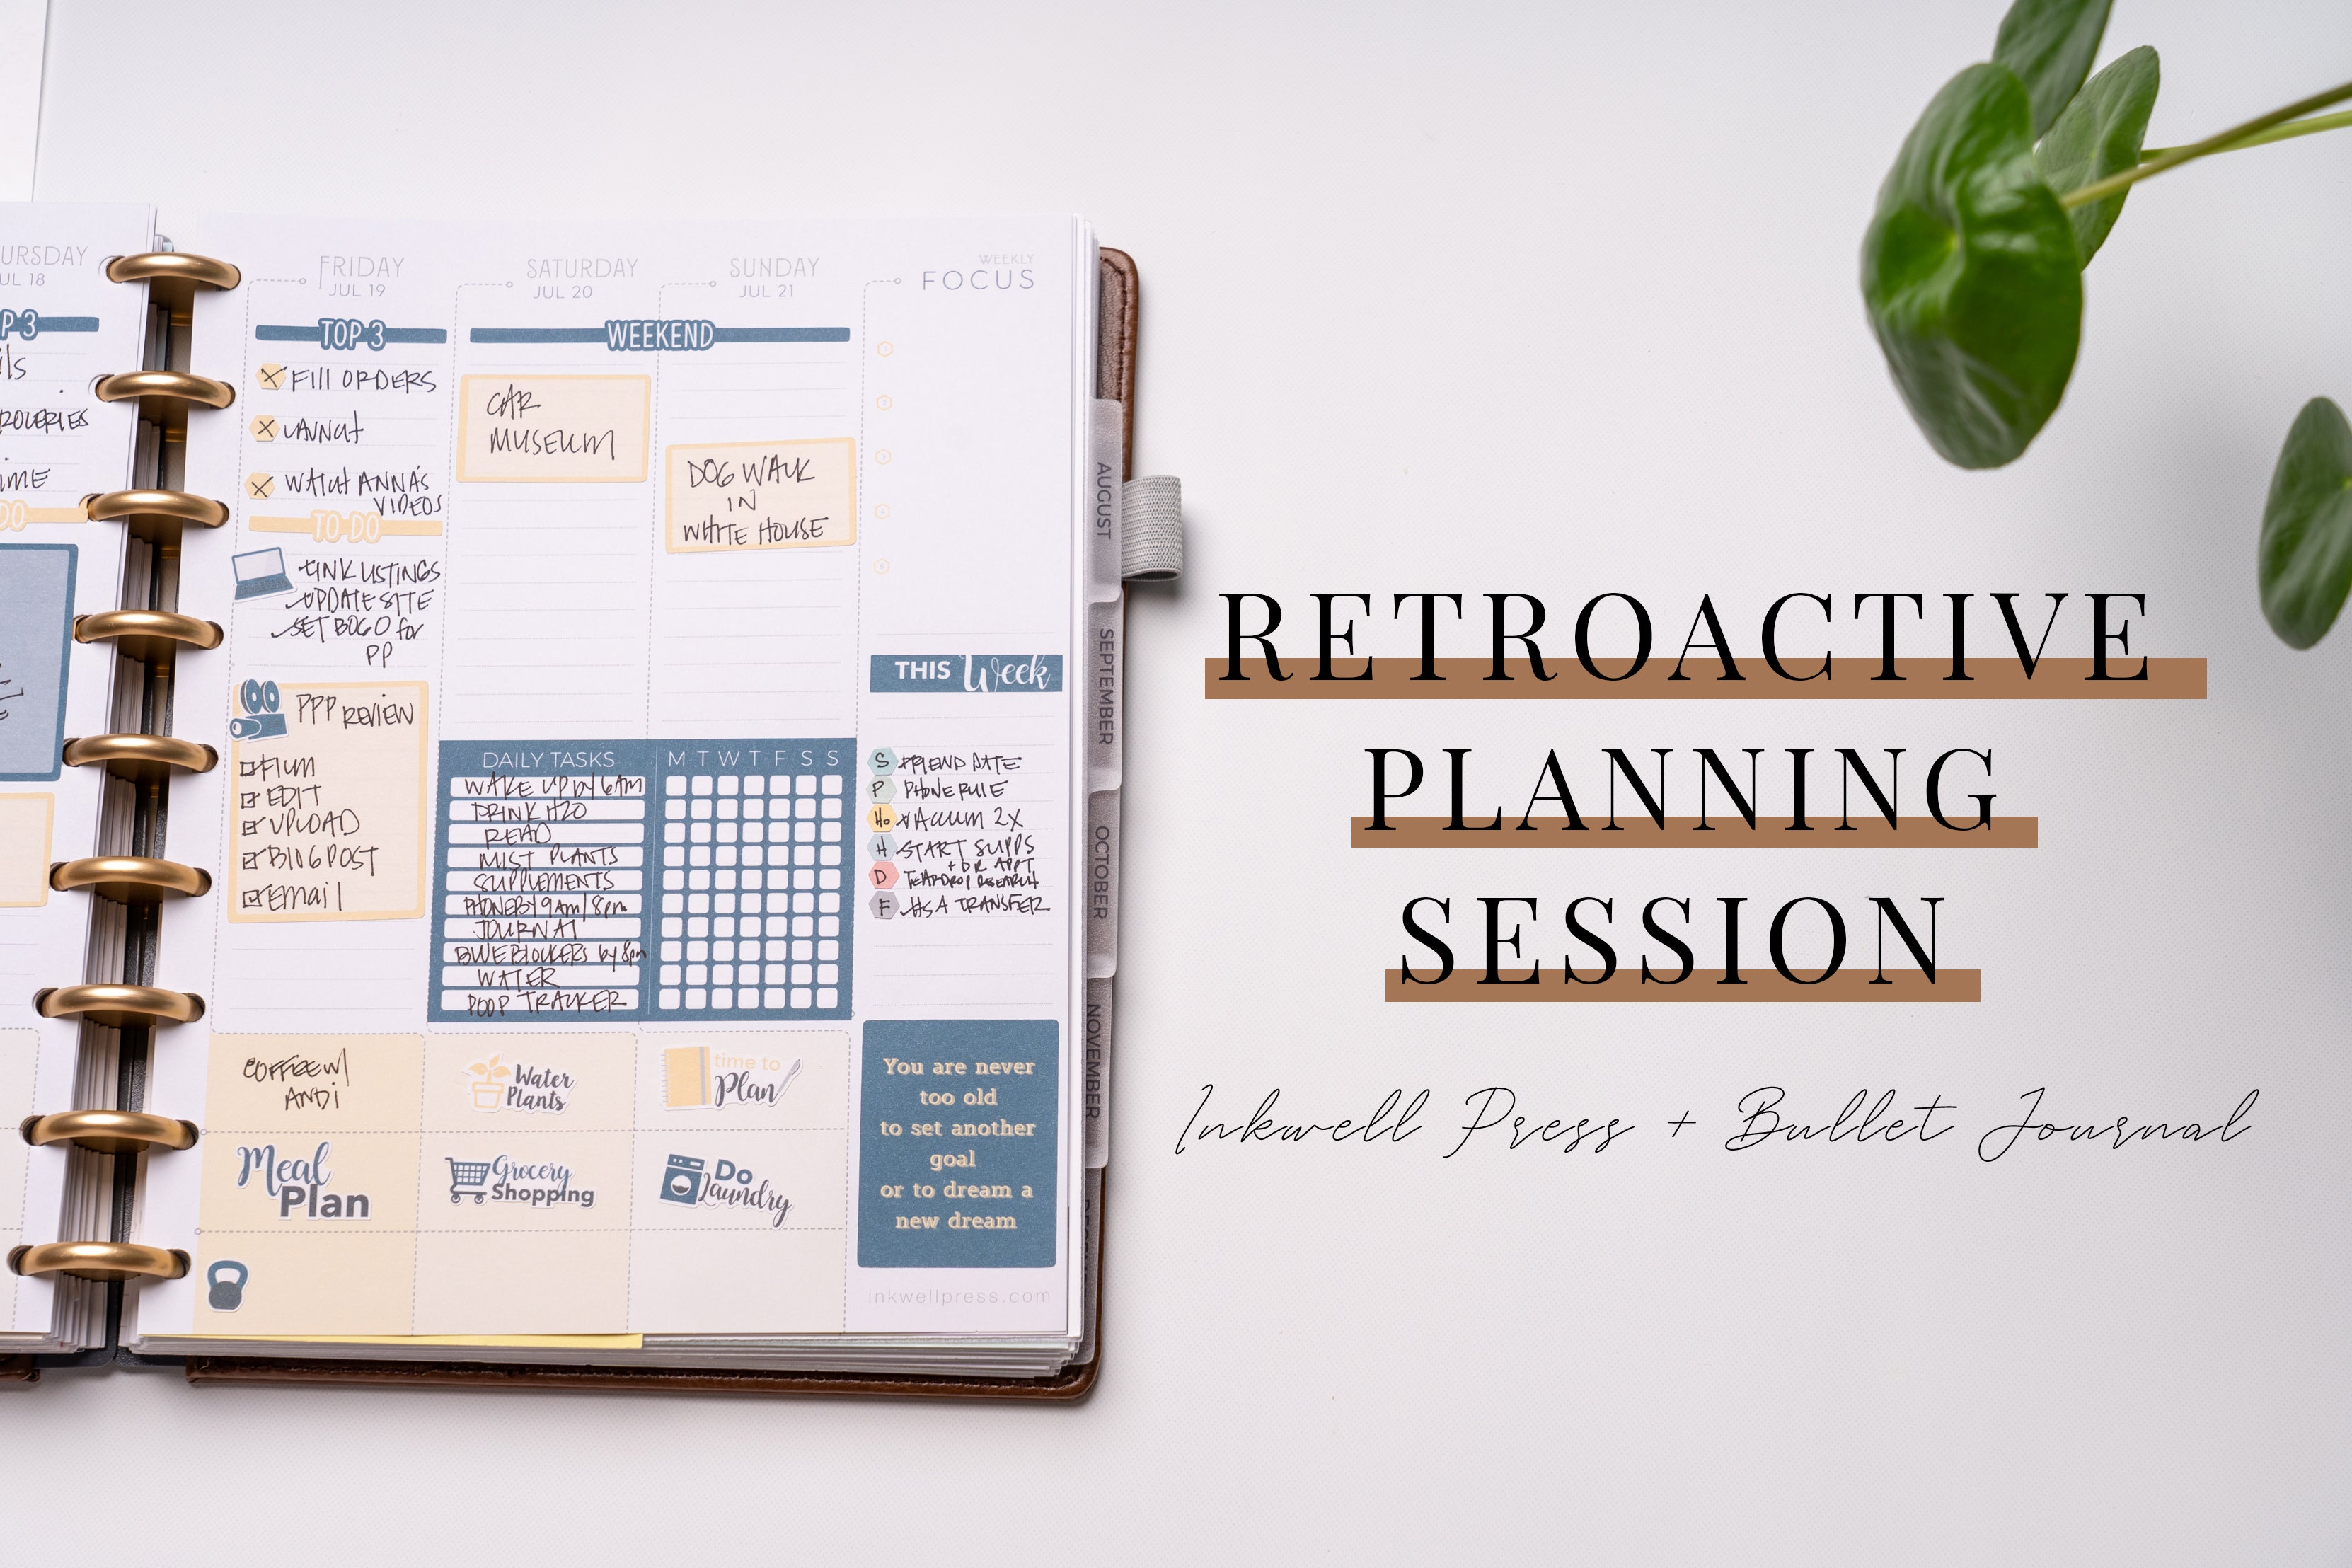 Retroactive Planning Session | IWP + BUJO